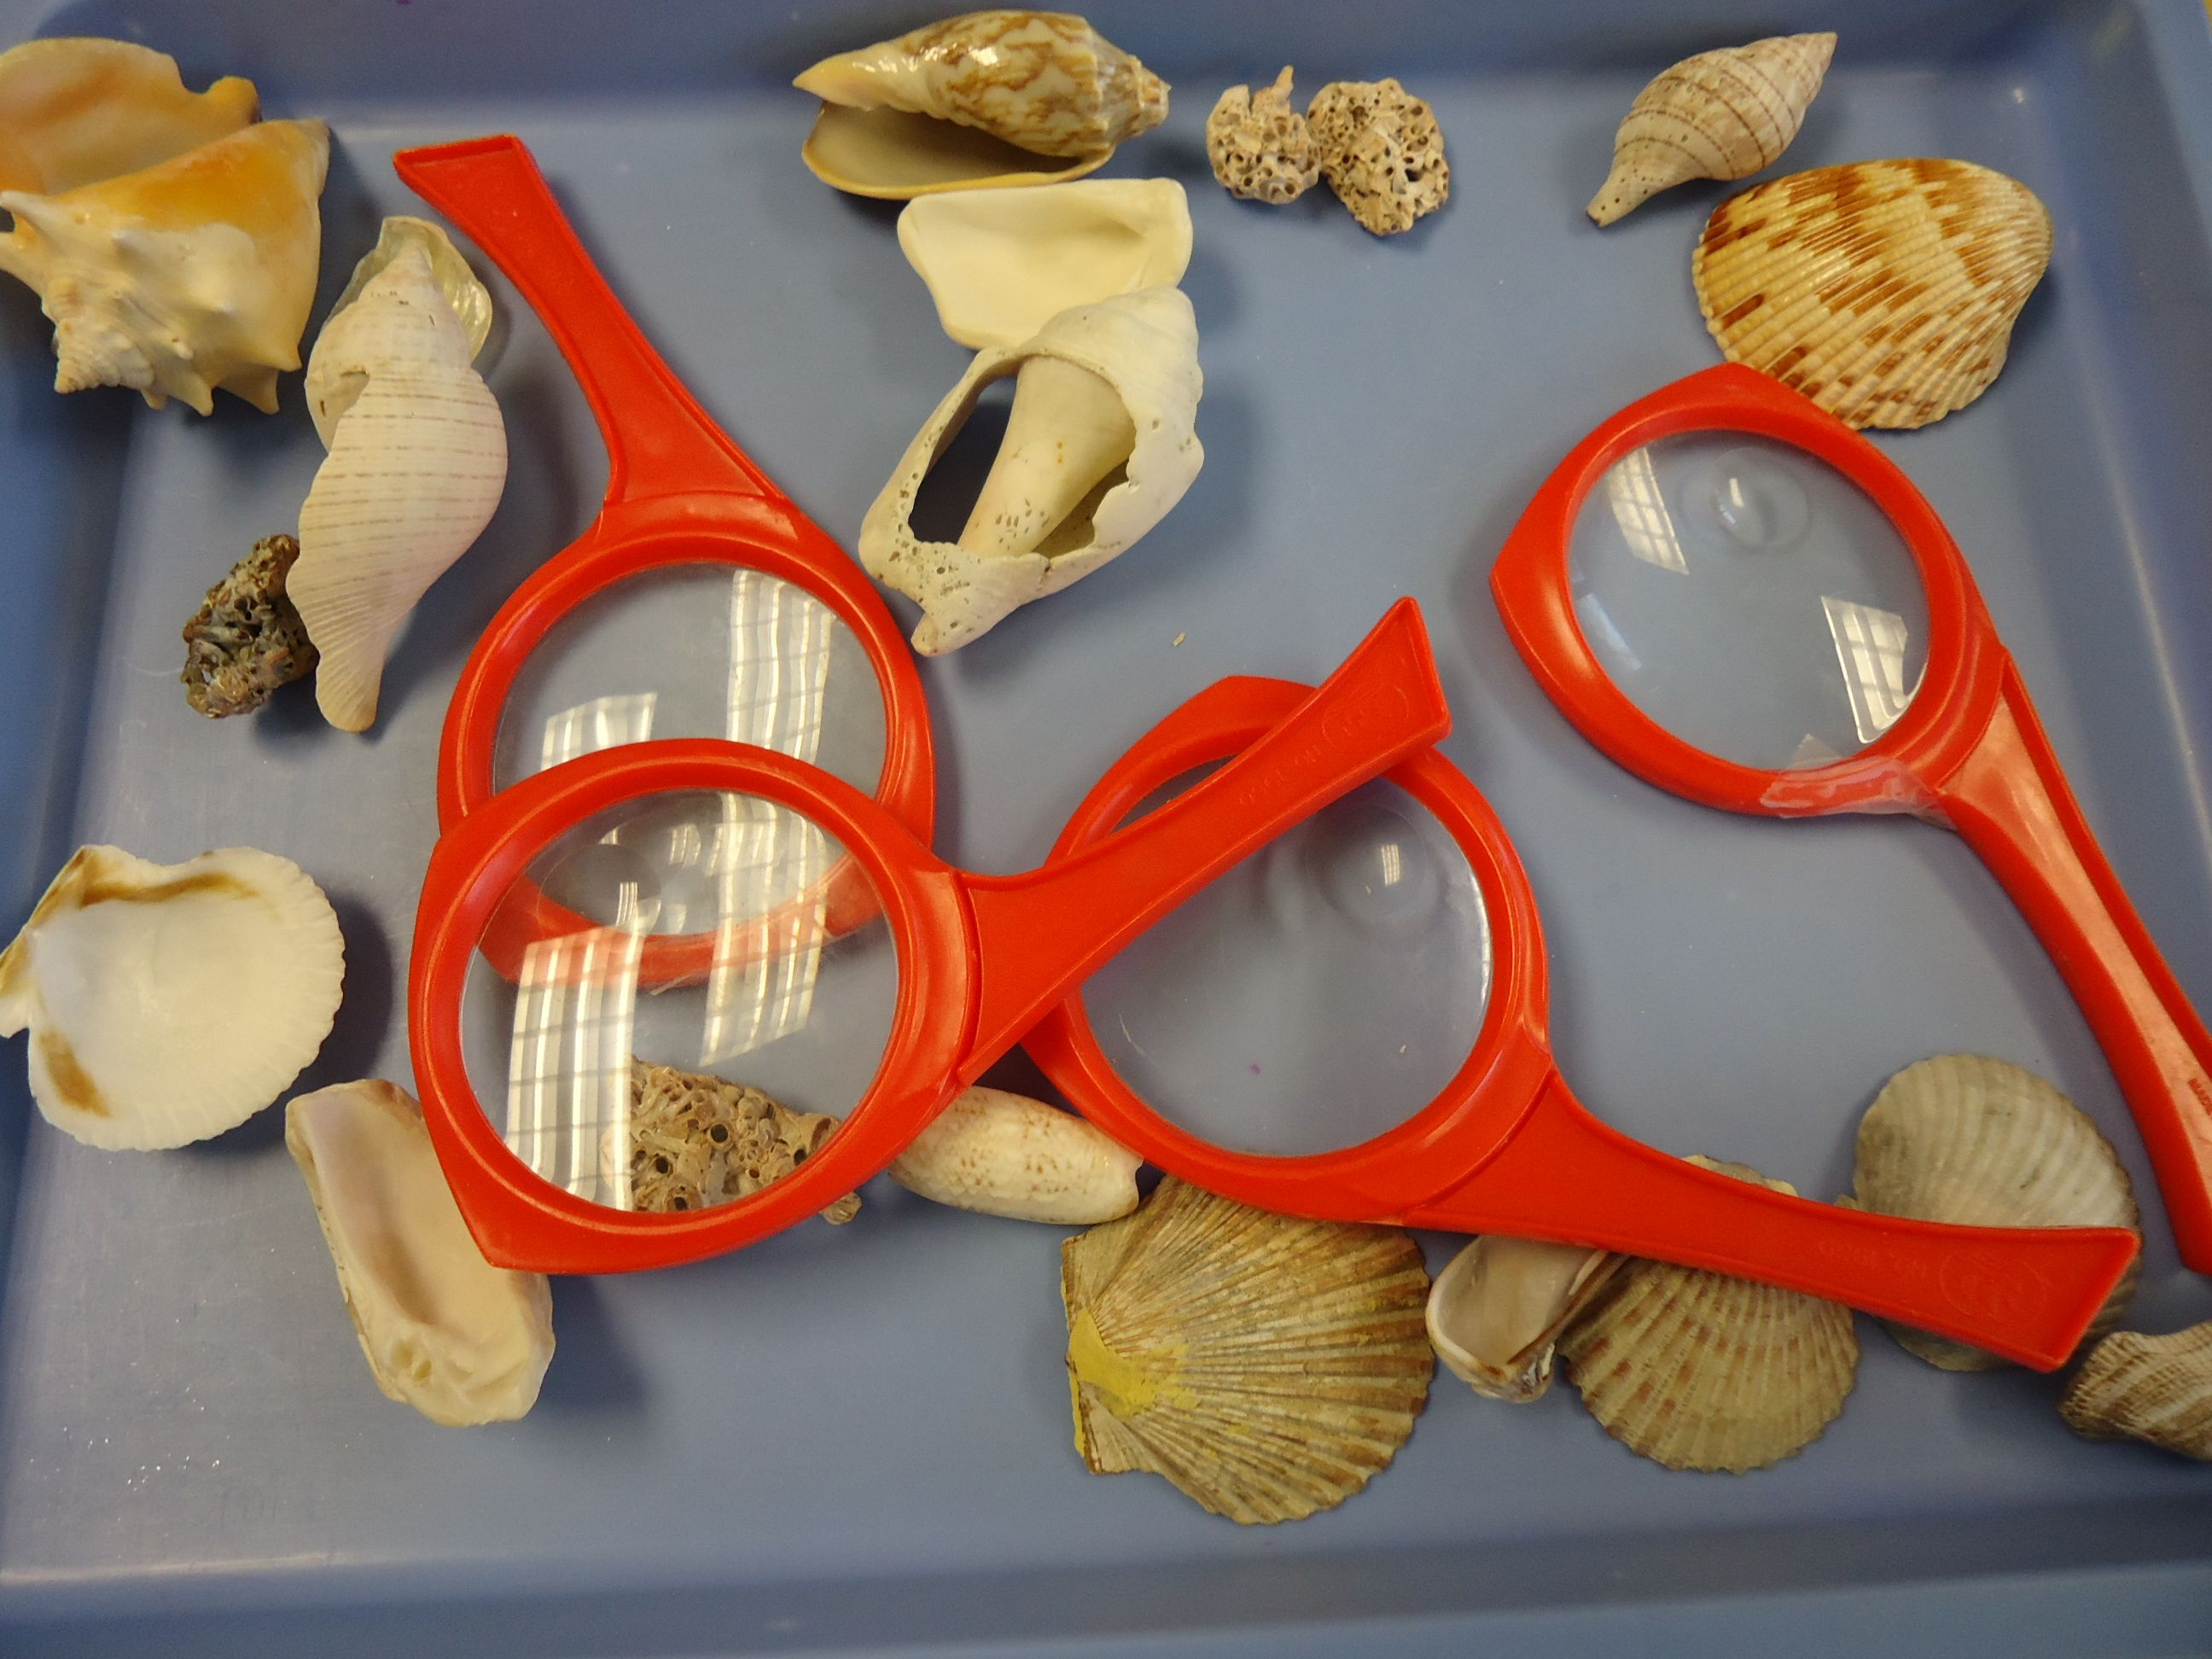 Under The Sea Science Activity We Let Children Explore Shells In A Variety Of Ways In Our